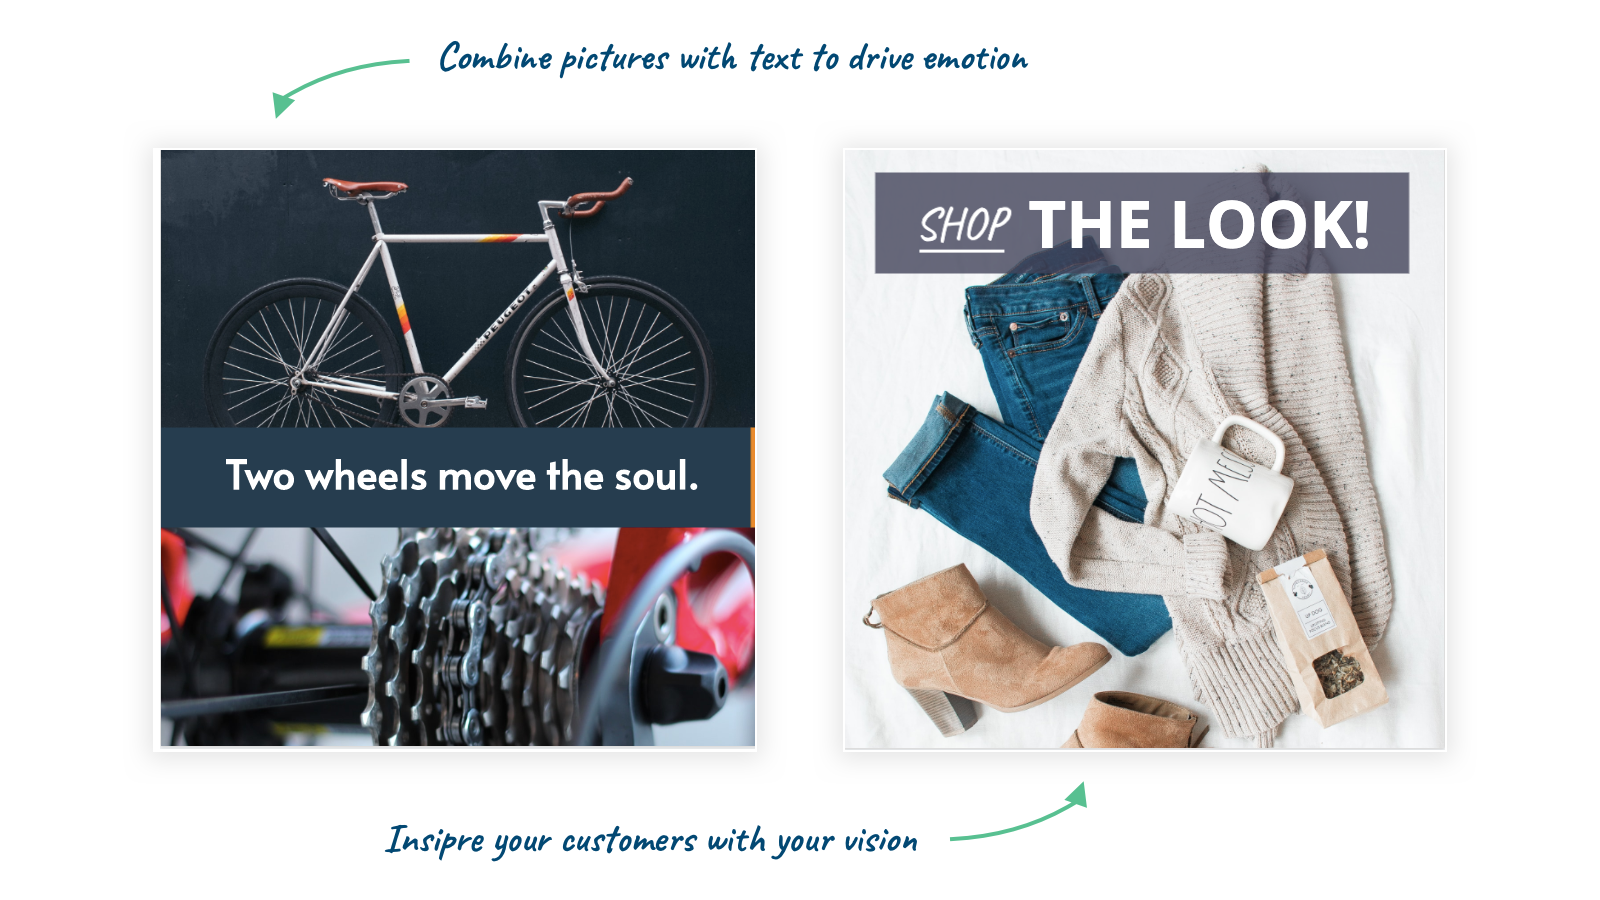 Combine photos and text to inspire customers